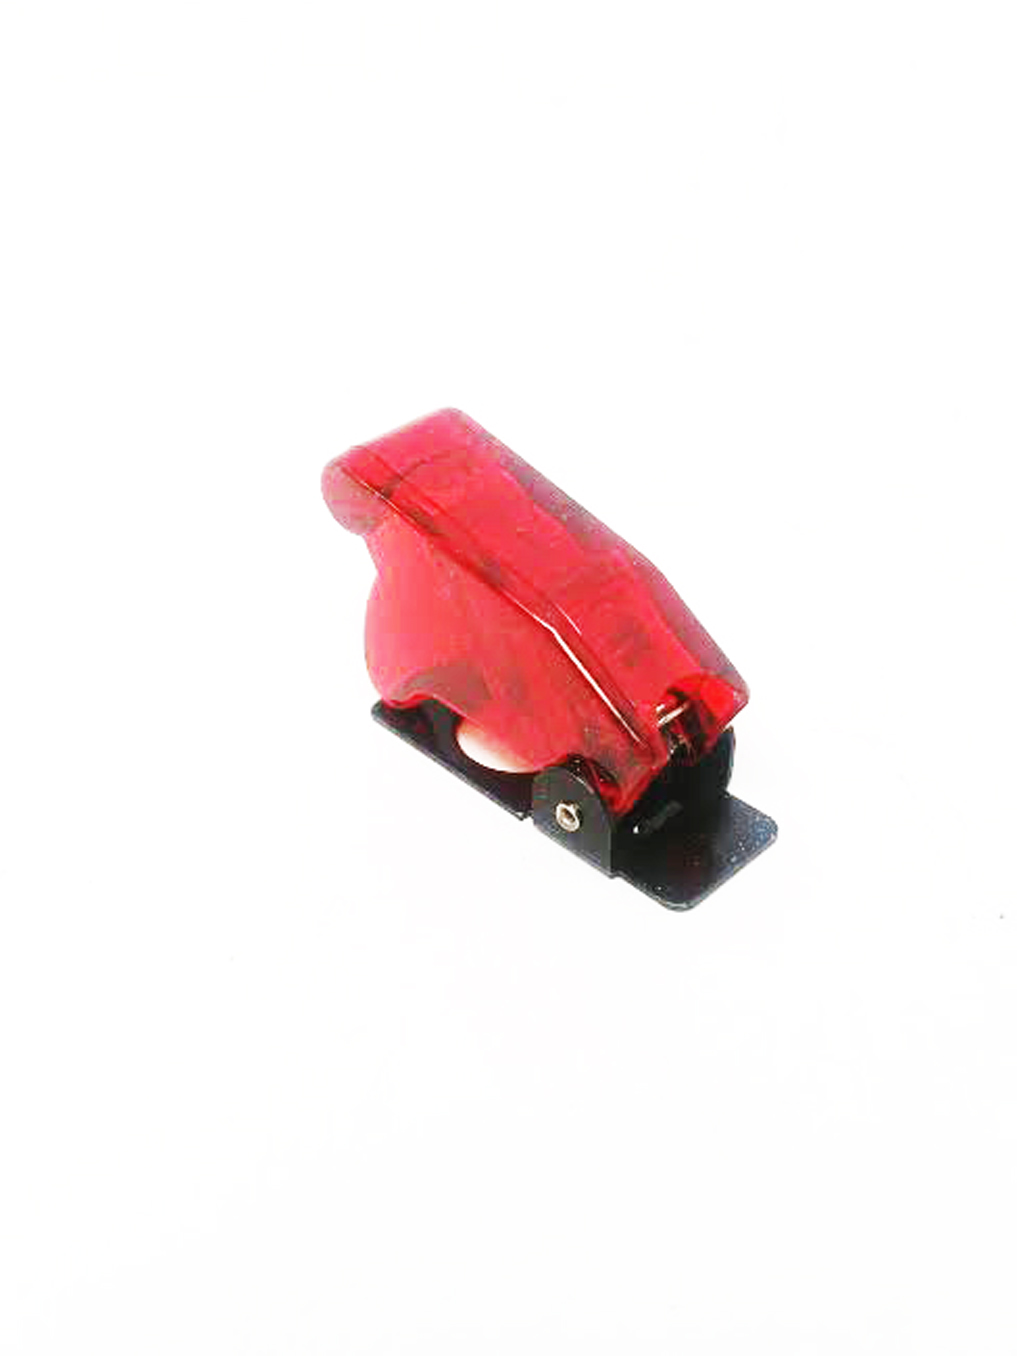 Red Safety Switch Flip Cap Cover For Auto Boat RV Toggle Switch